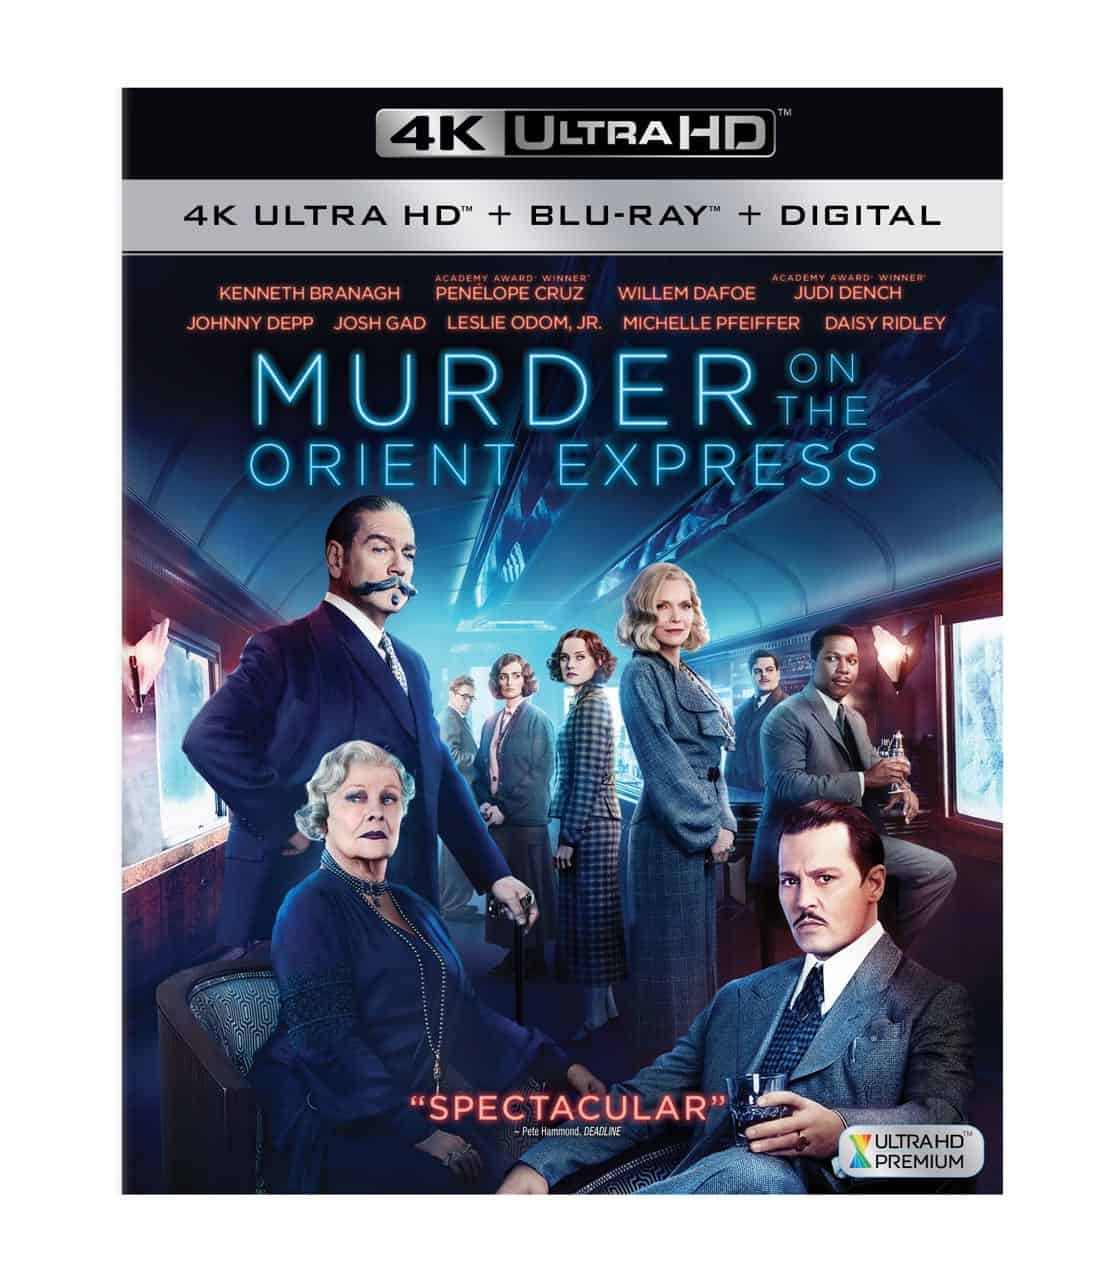 MURDER ON THE ORIENT EXPRESS 4K, Blu-ray And DVD Release